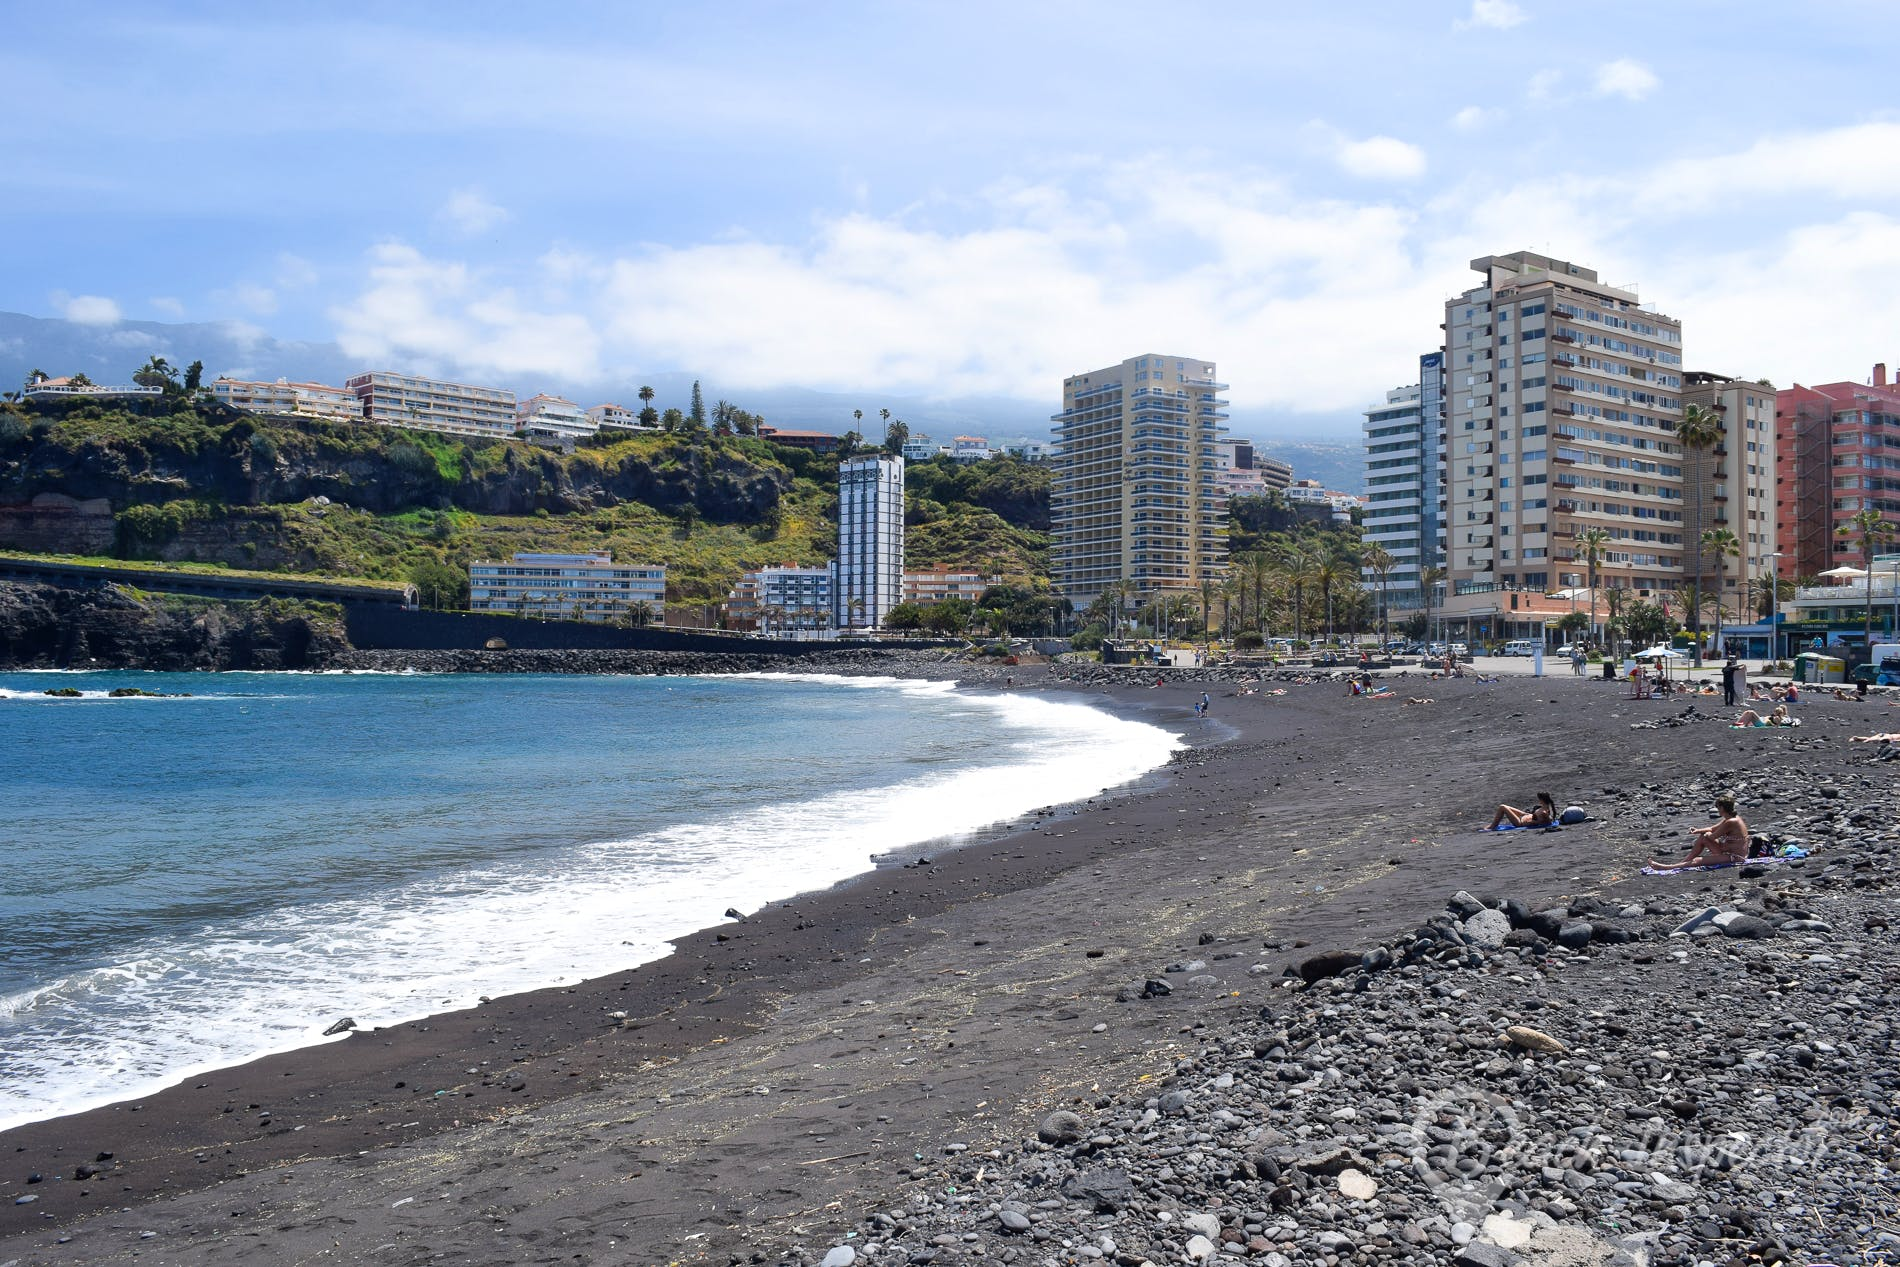 Beach Playa Martianez, Tenerife, Spain